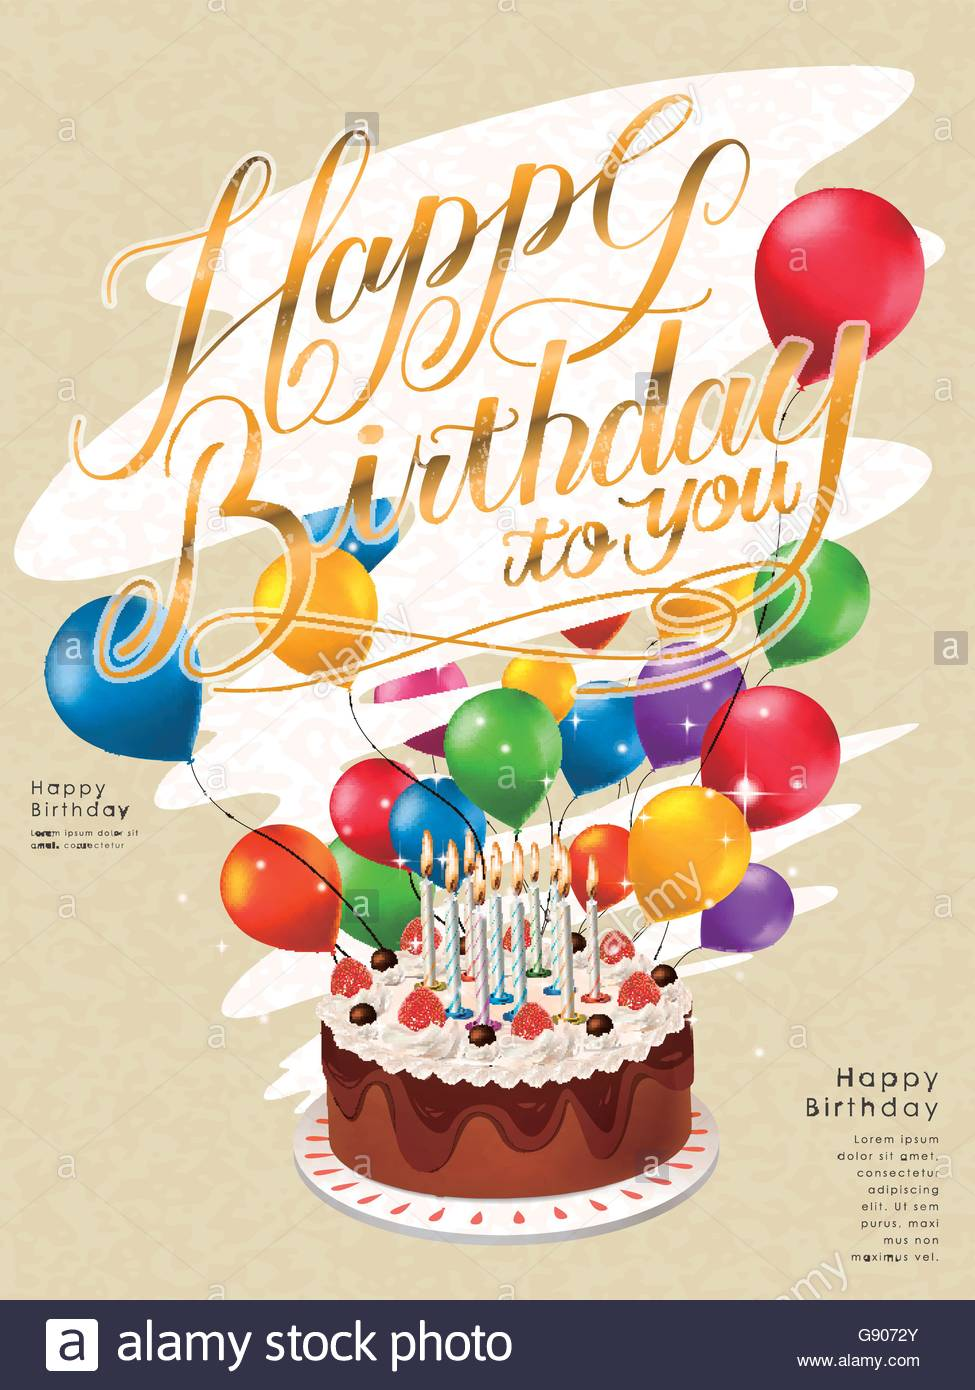 happy birthday poster with photo ; happy-birthday-poster-template-design-with-lovely-cake-and-balloons-G9072Y